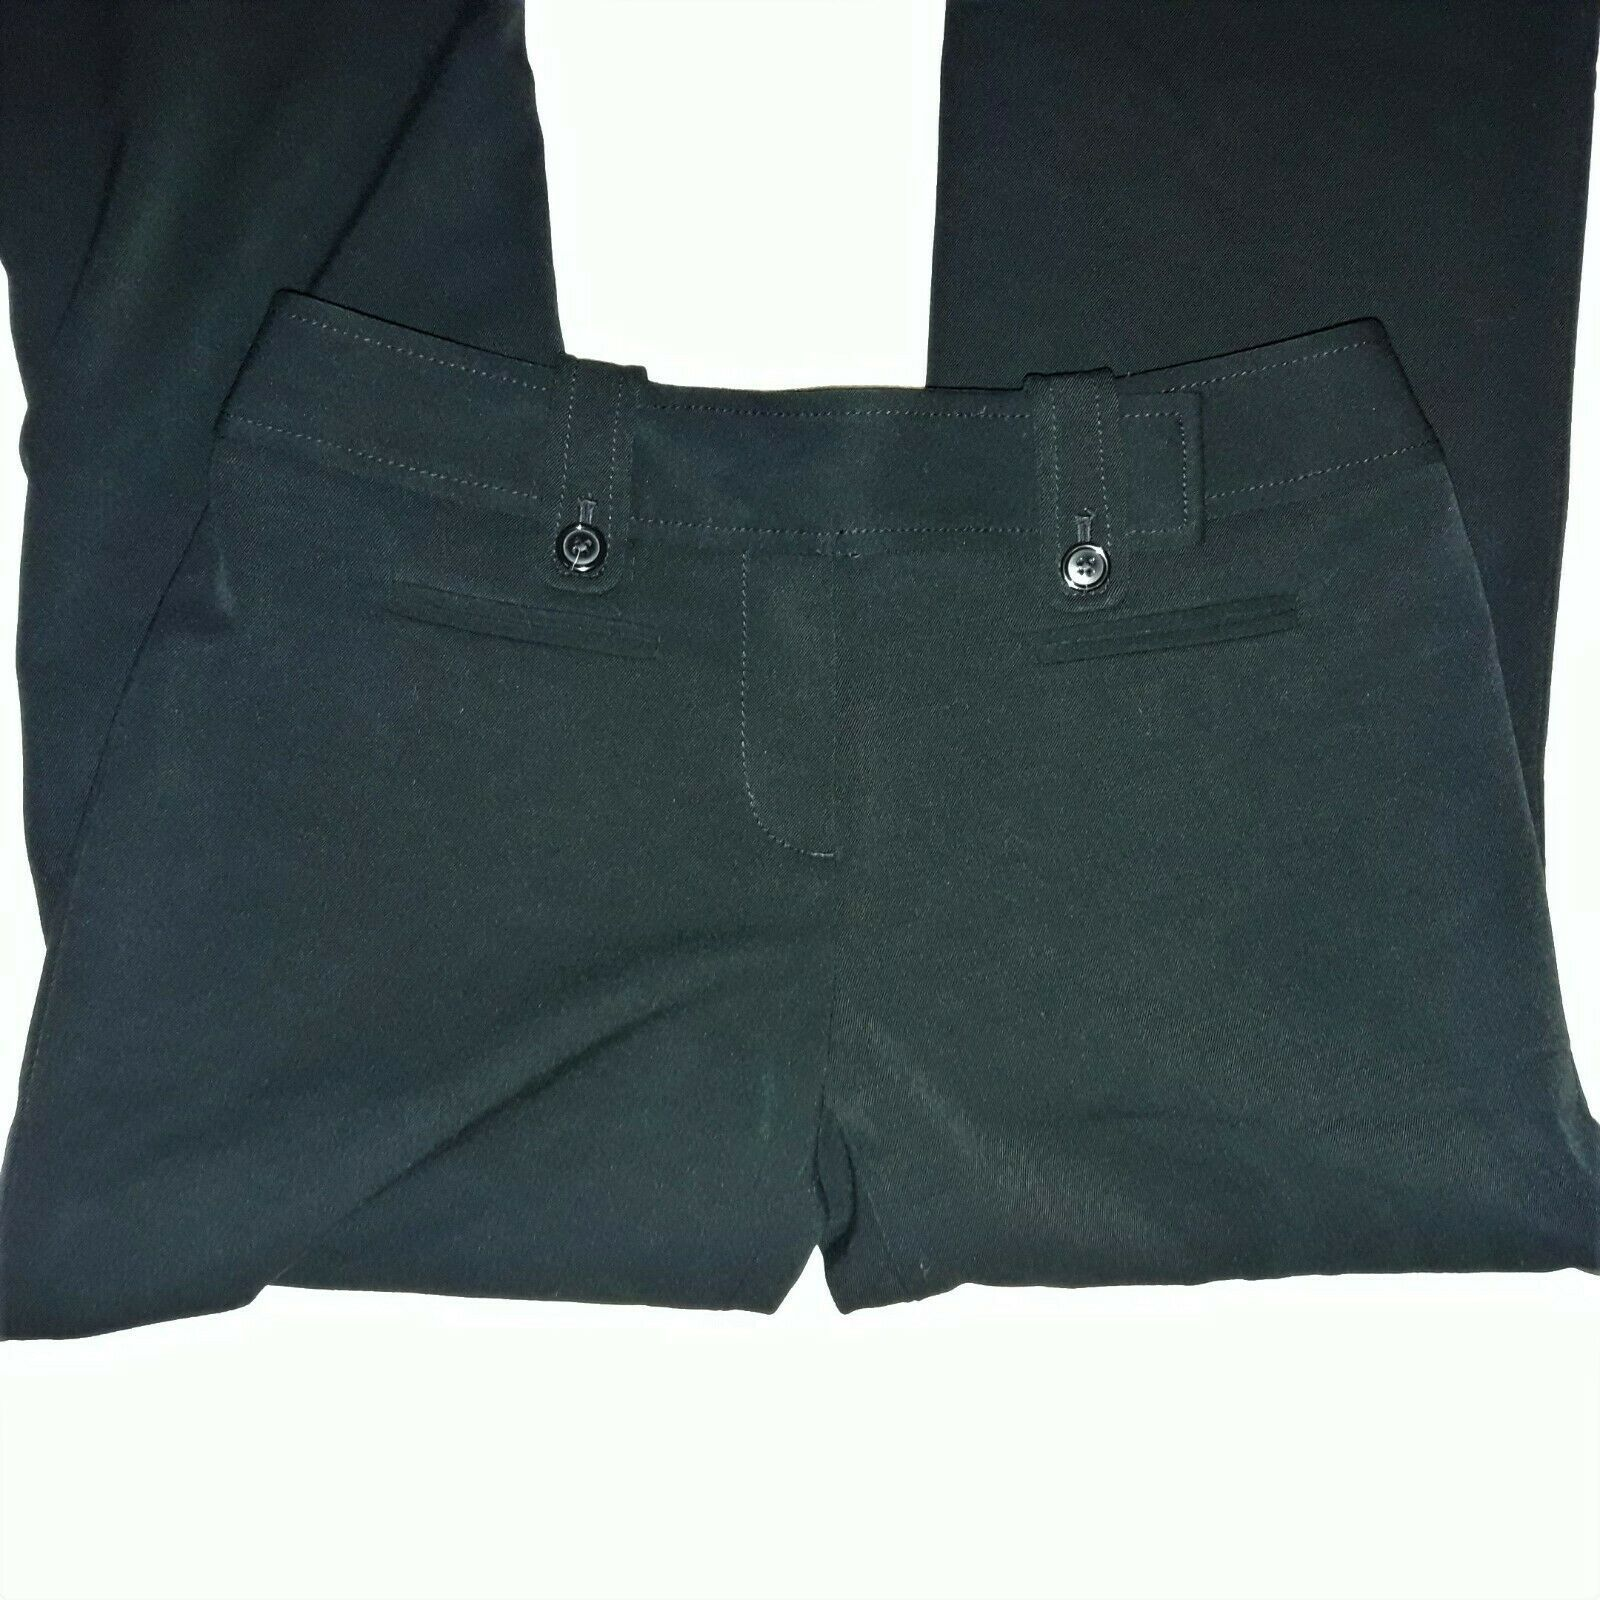 Women's Ann Taylor Factory Signature Dress Pants Size 0P Black Career image 3